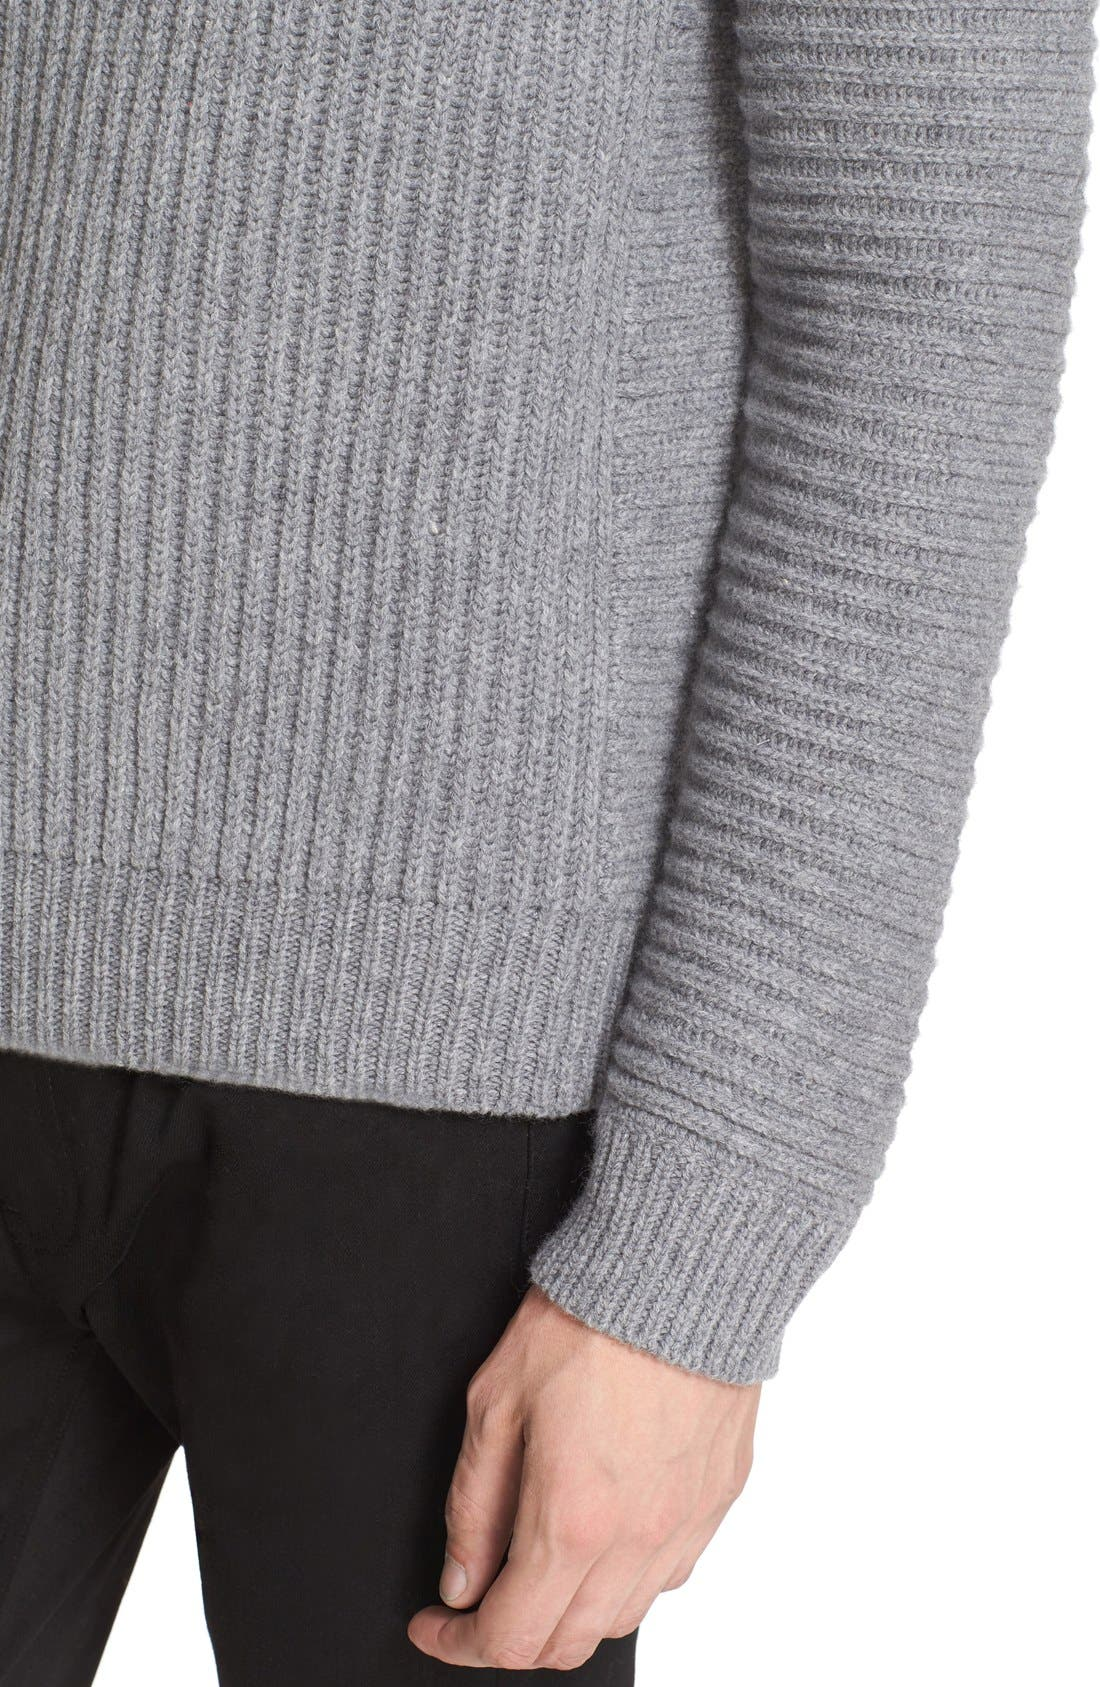 ACNE STUDIOS,                             Kalle Ribbed Turtleneck Sweater,                             Alternate thumbnail 5, color,                             020